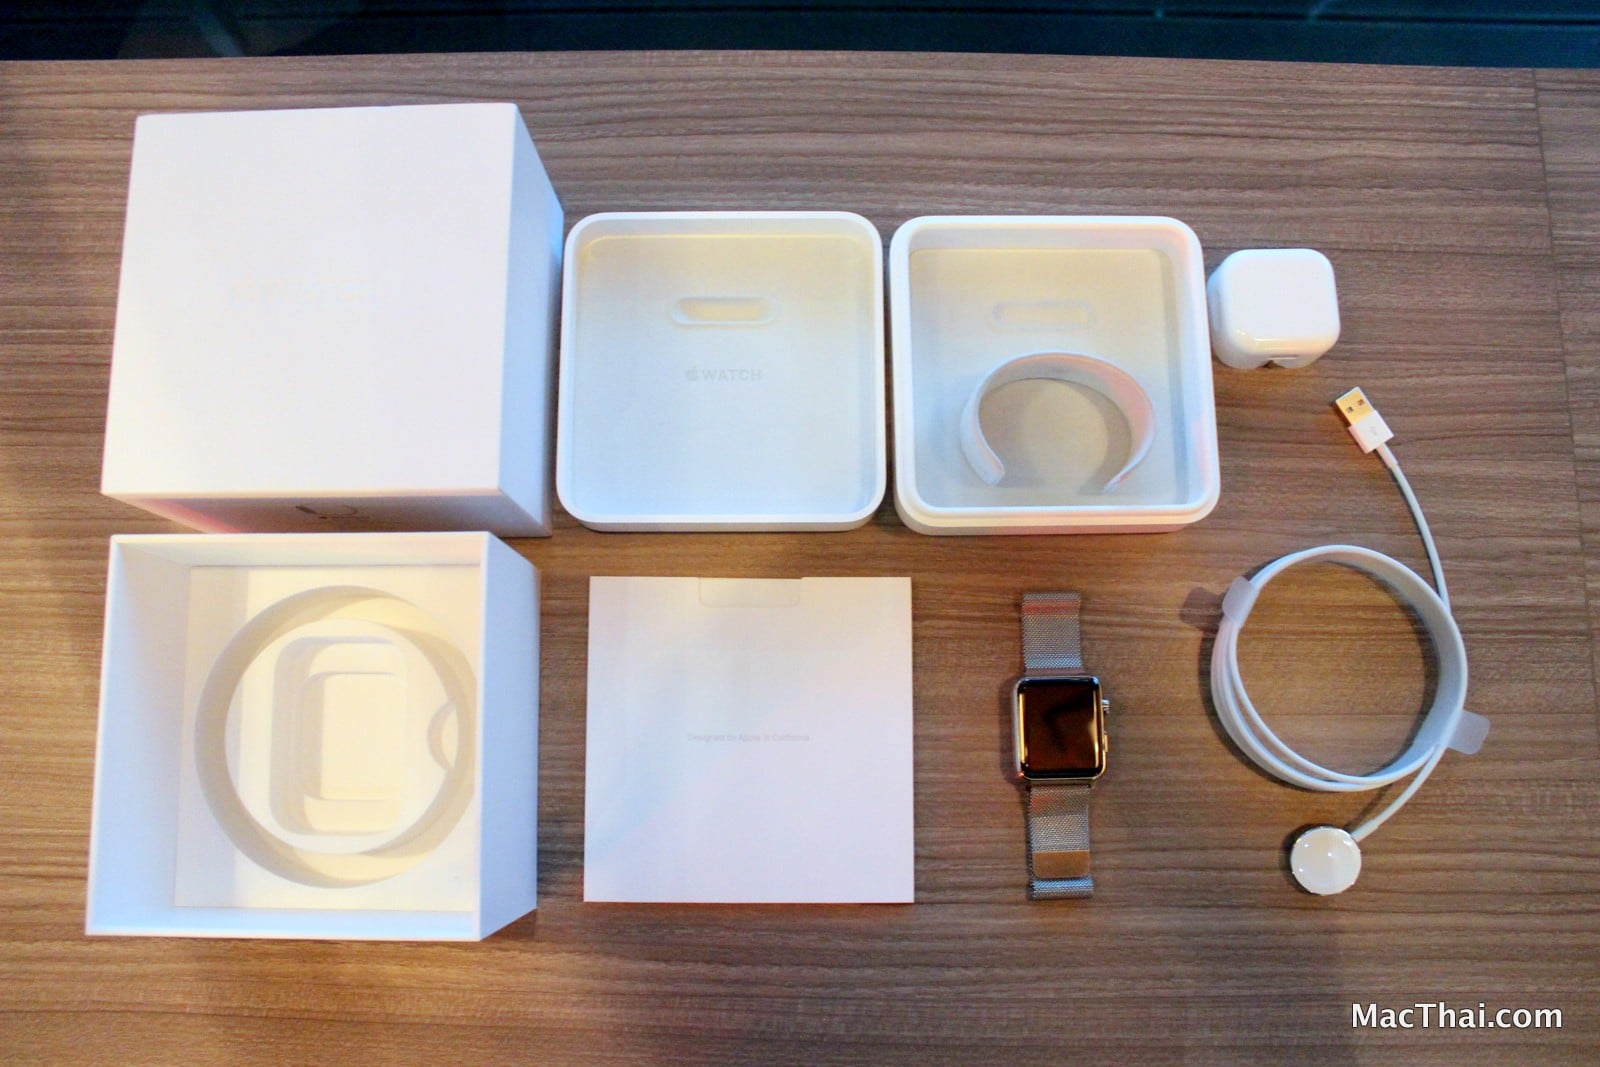 macthai-review-apple-watch-with-milanese-loop-088